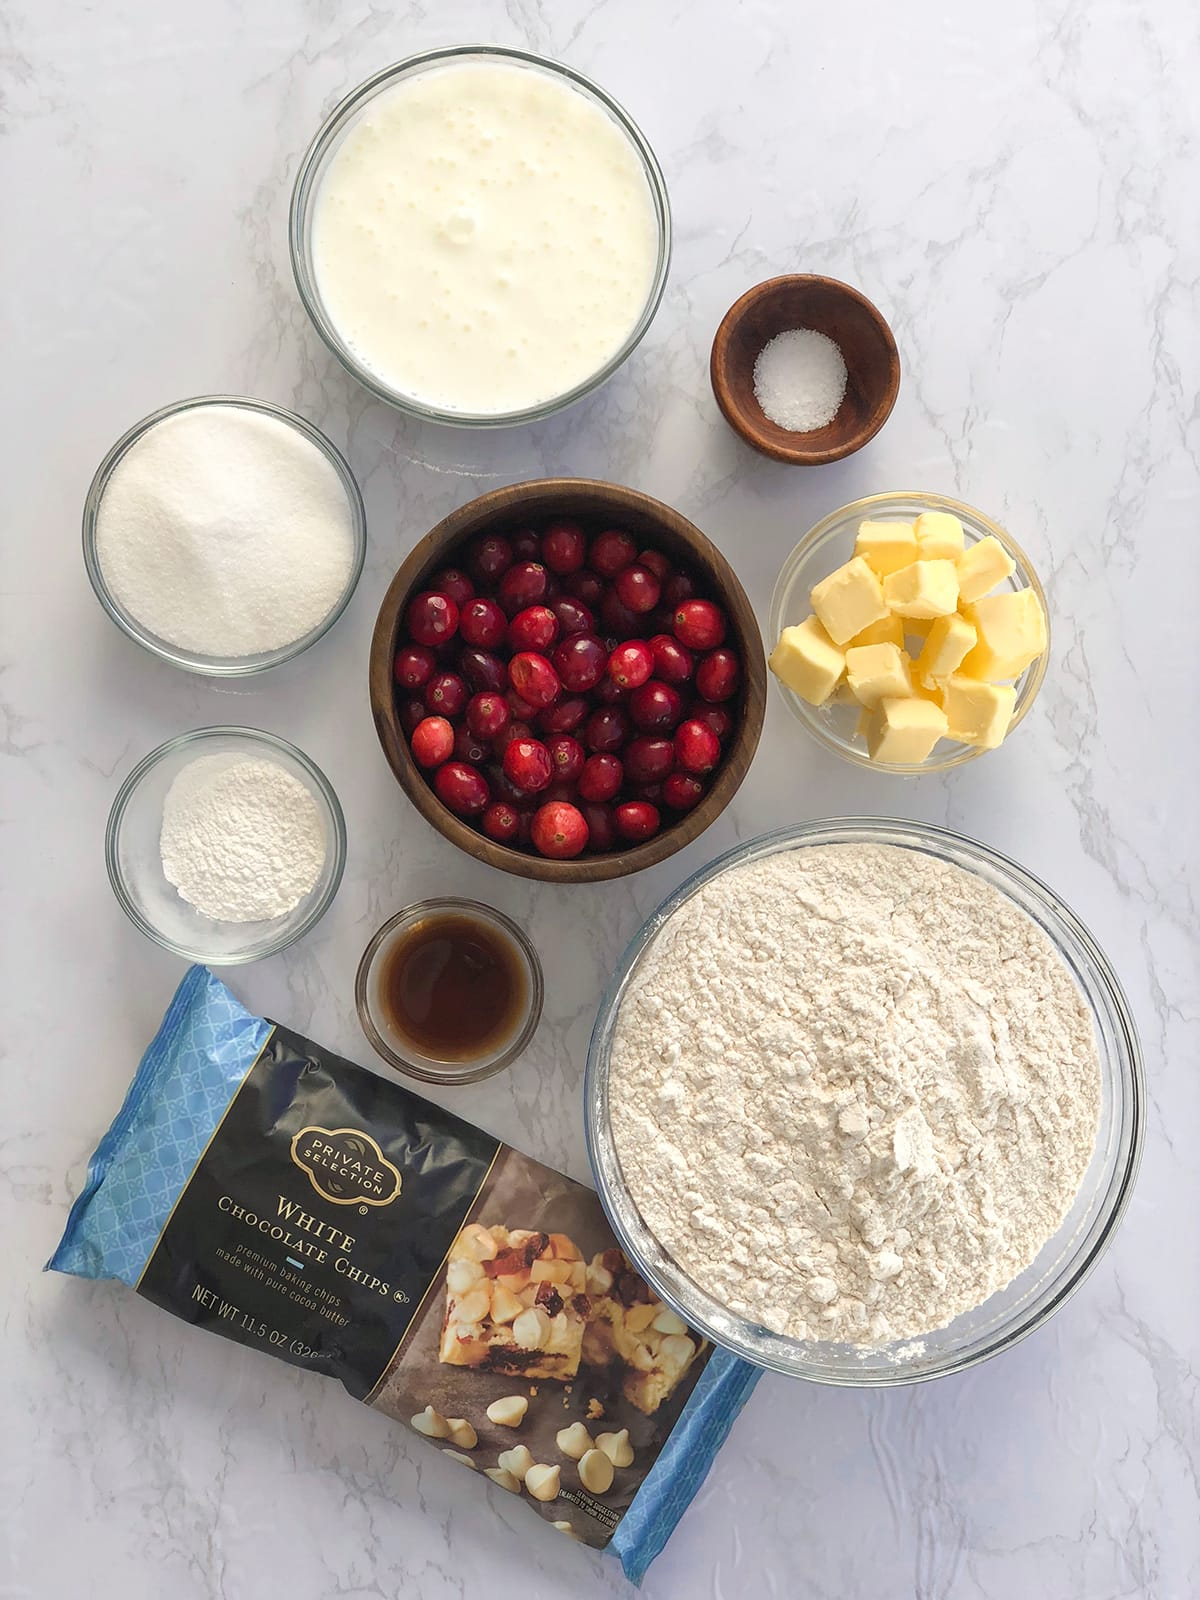 Cranberry White Chocolate Scone Ingredients